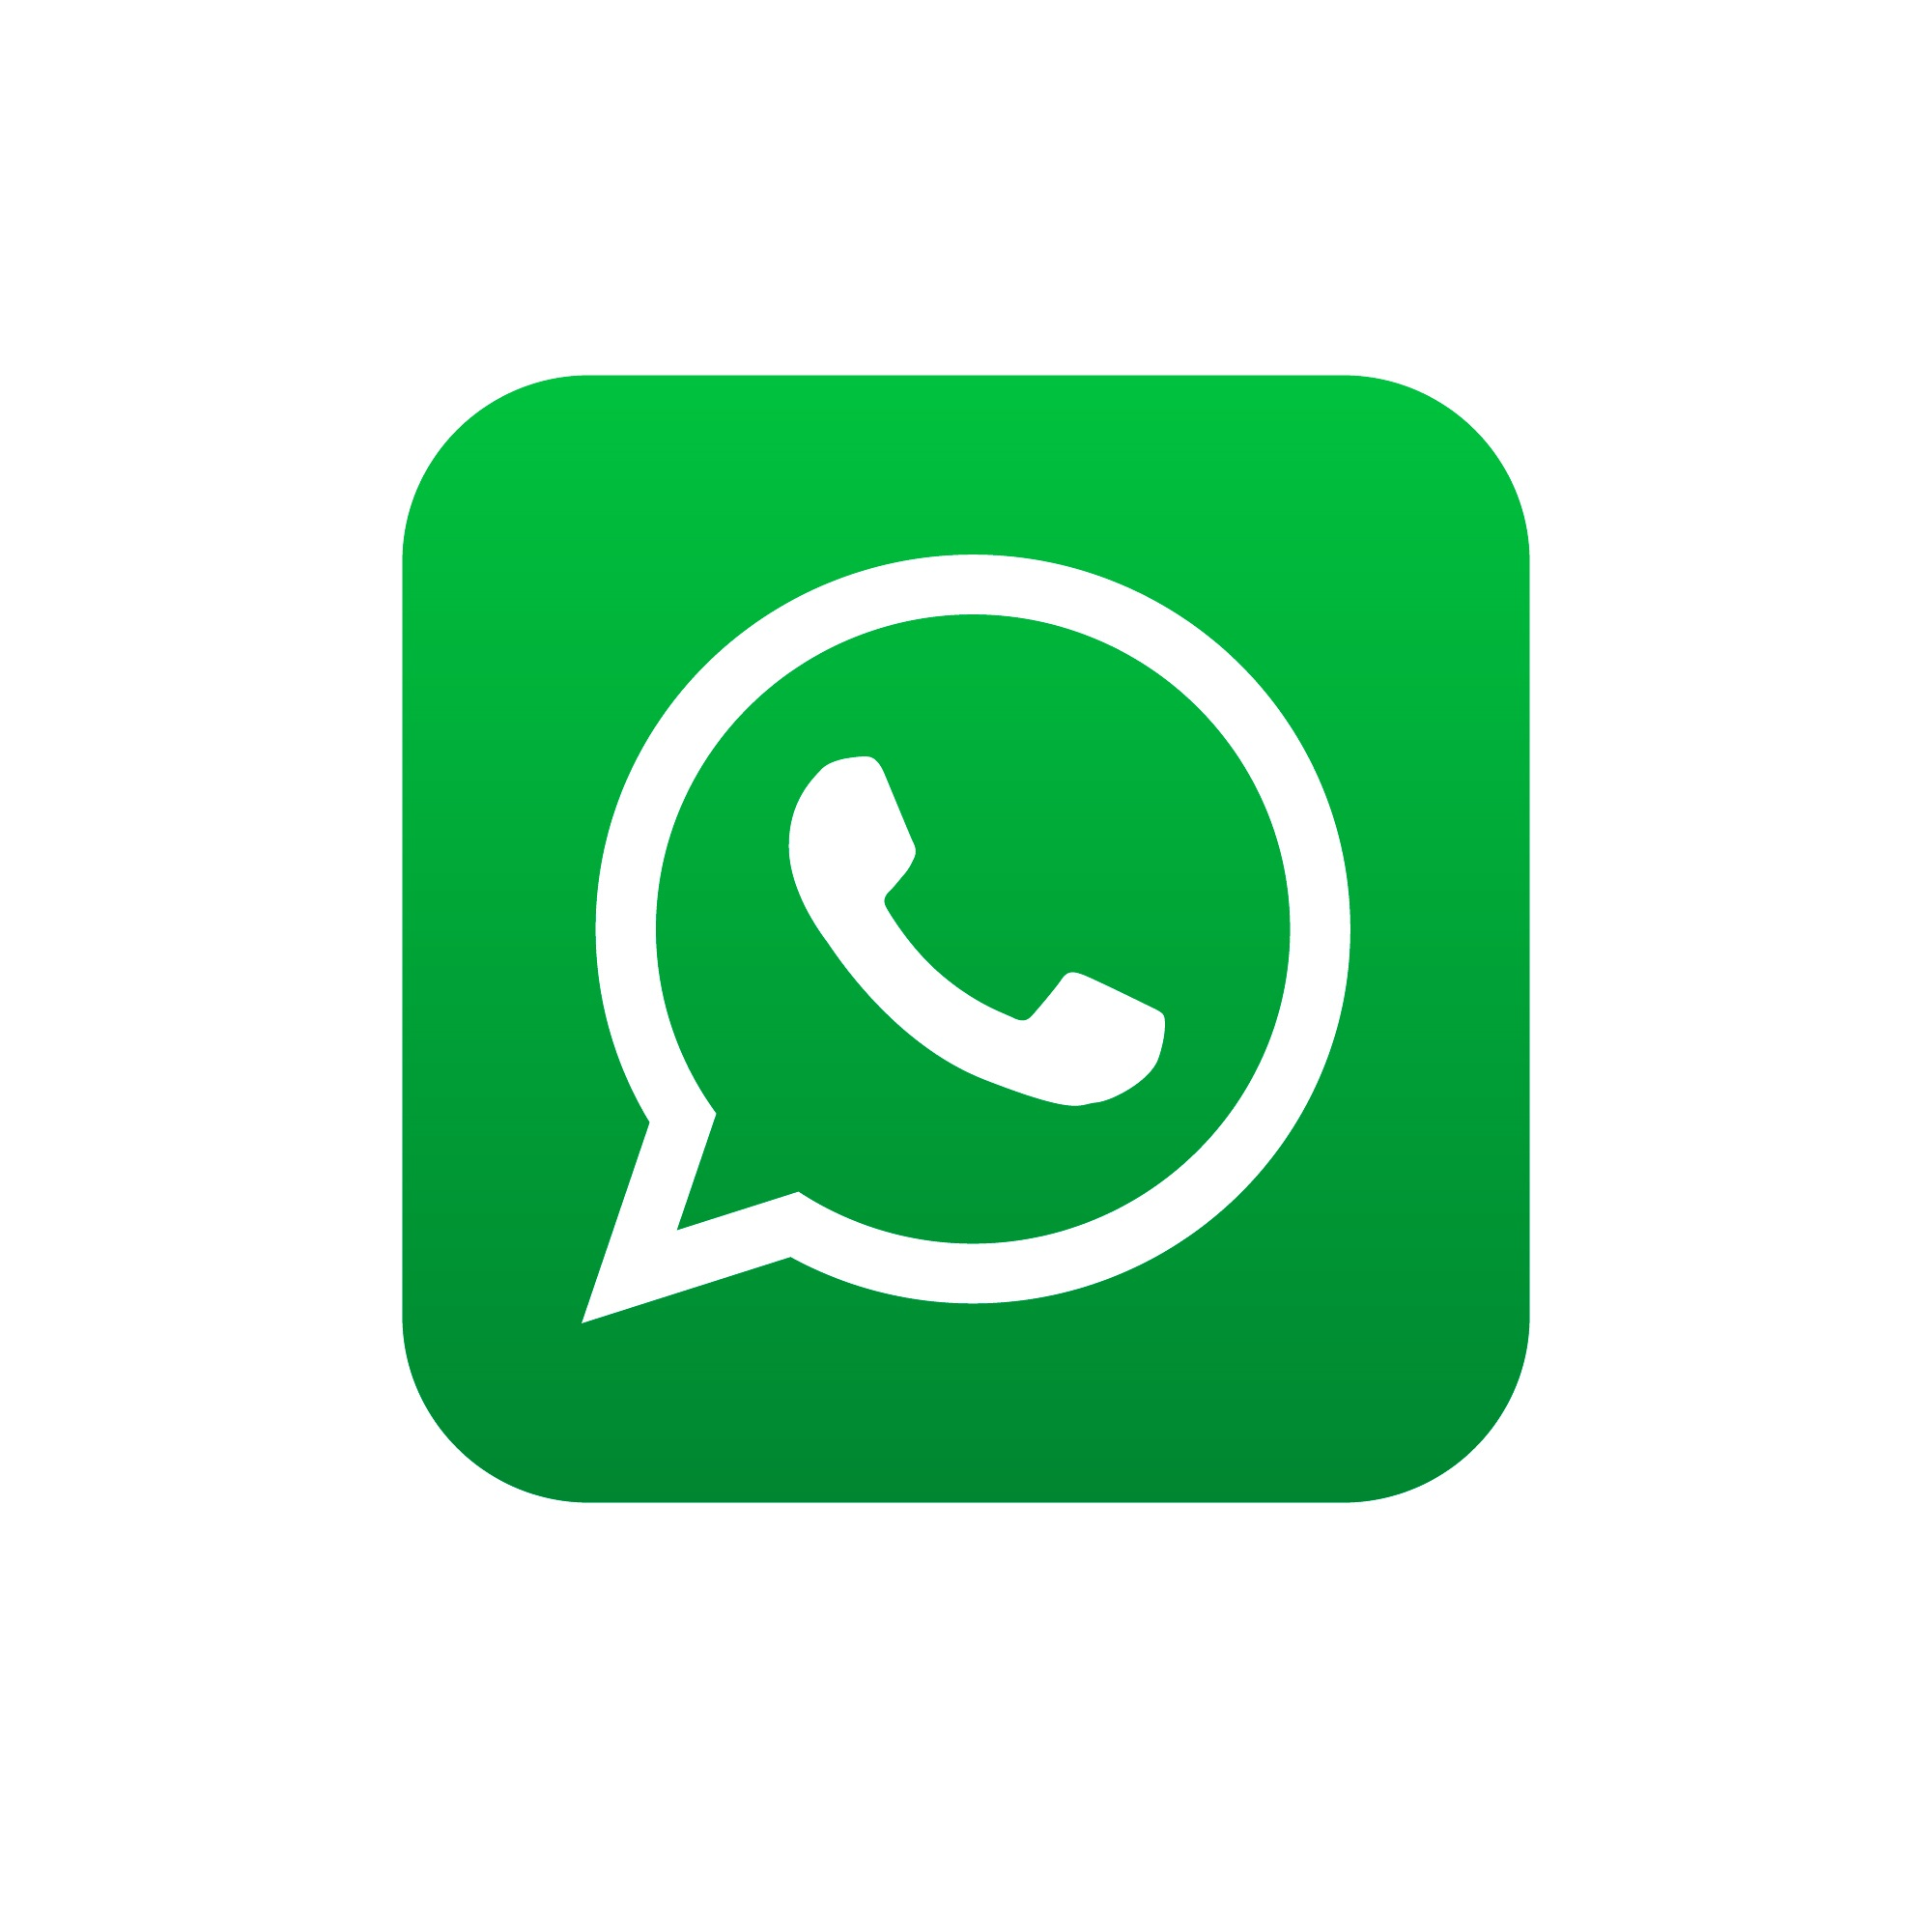 WhatsApp uses Status Messages for updating users about their new privacy policy